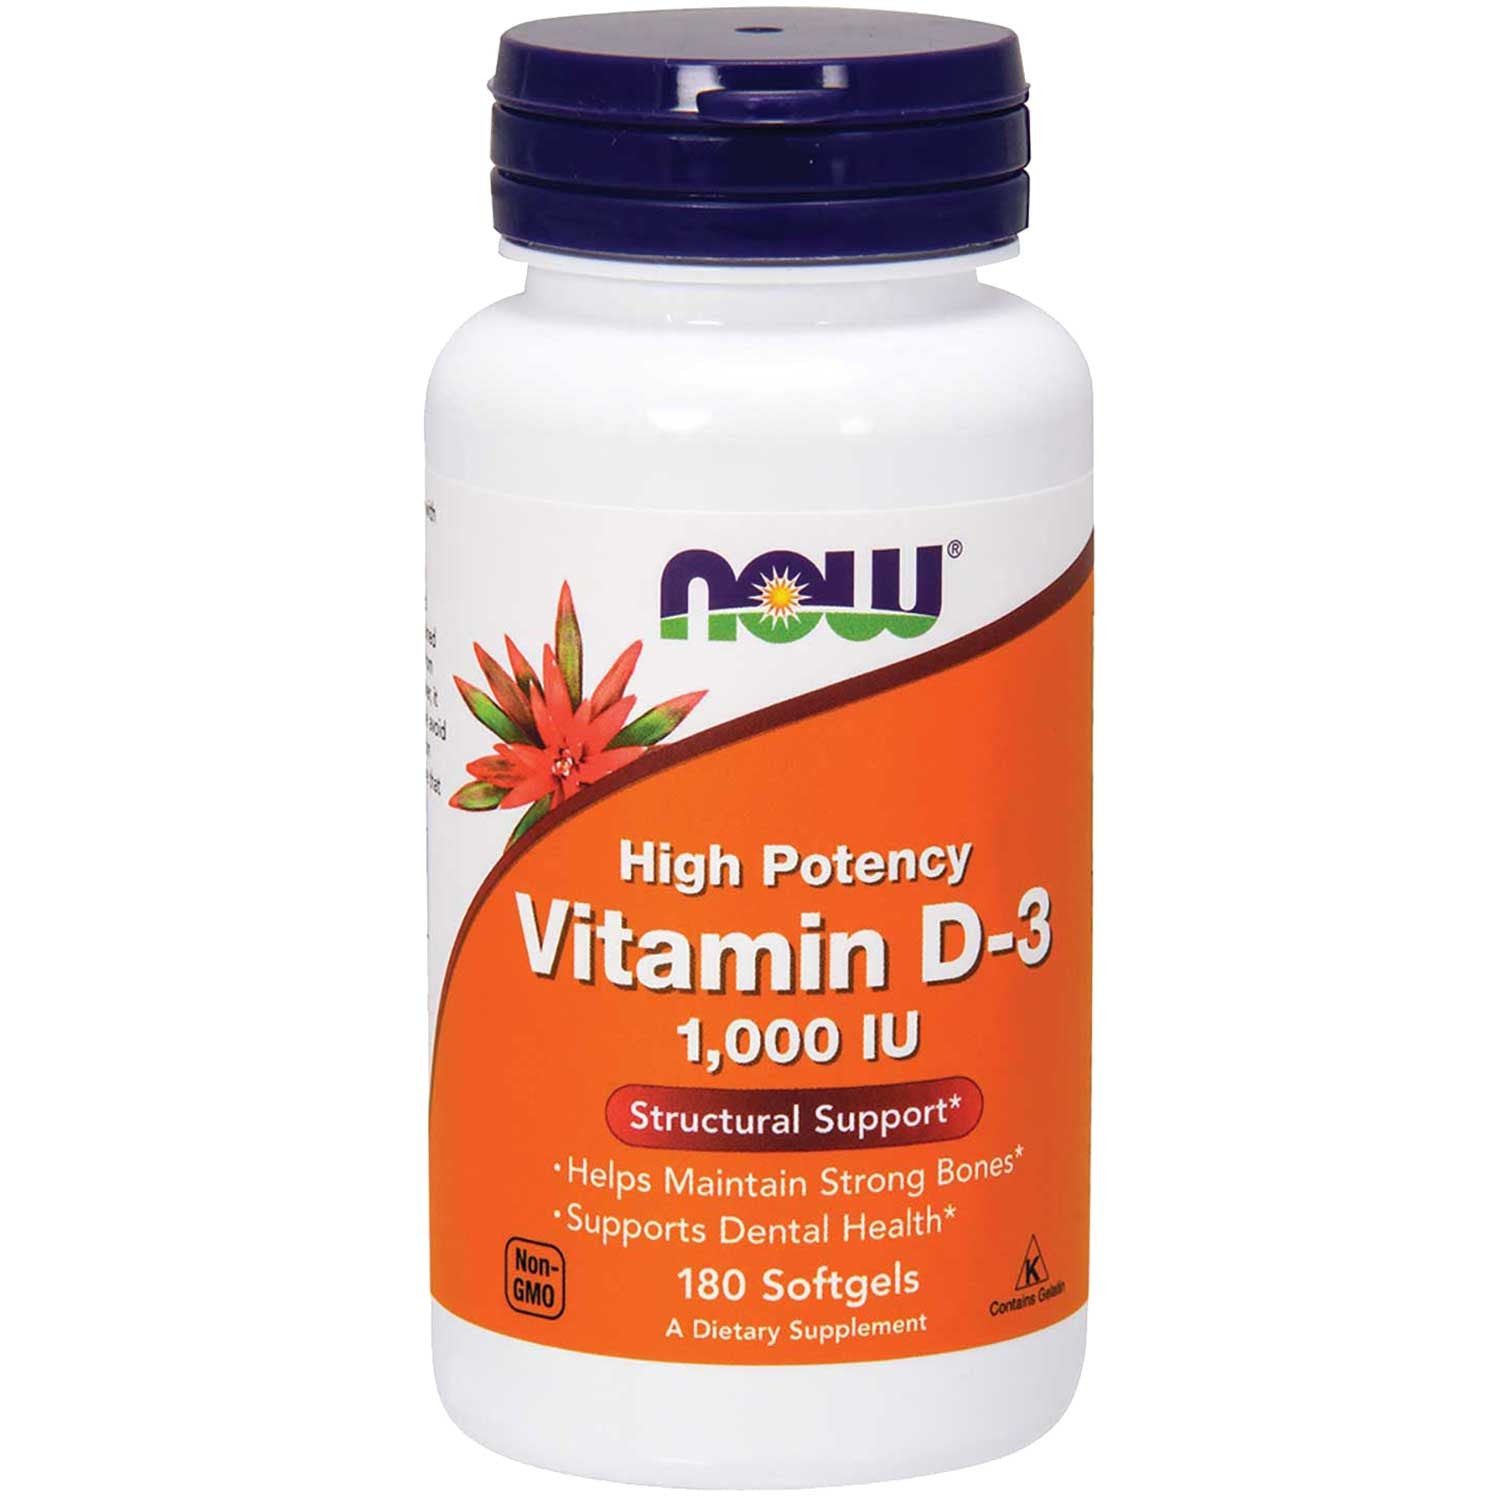 NOW Vitamin D-3 High Potency 1000 IU, 180 sgls.-NaturesWisdom